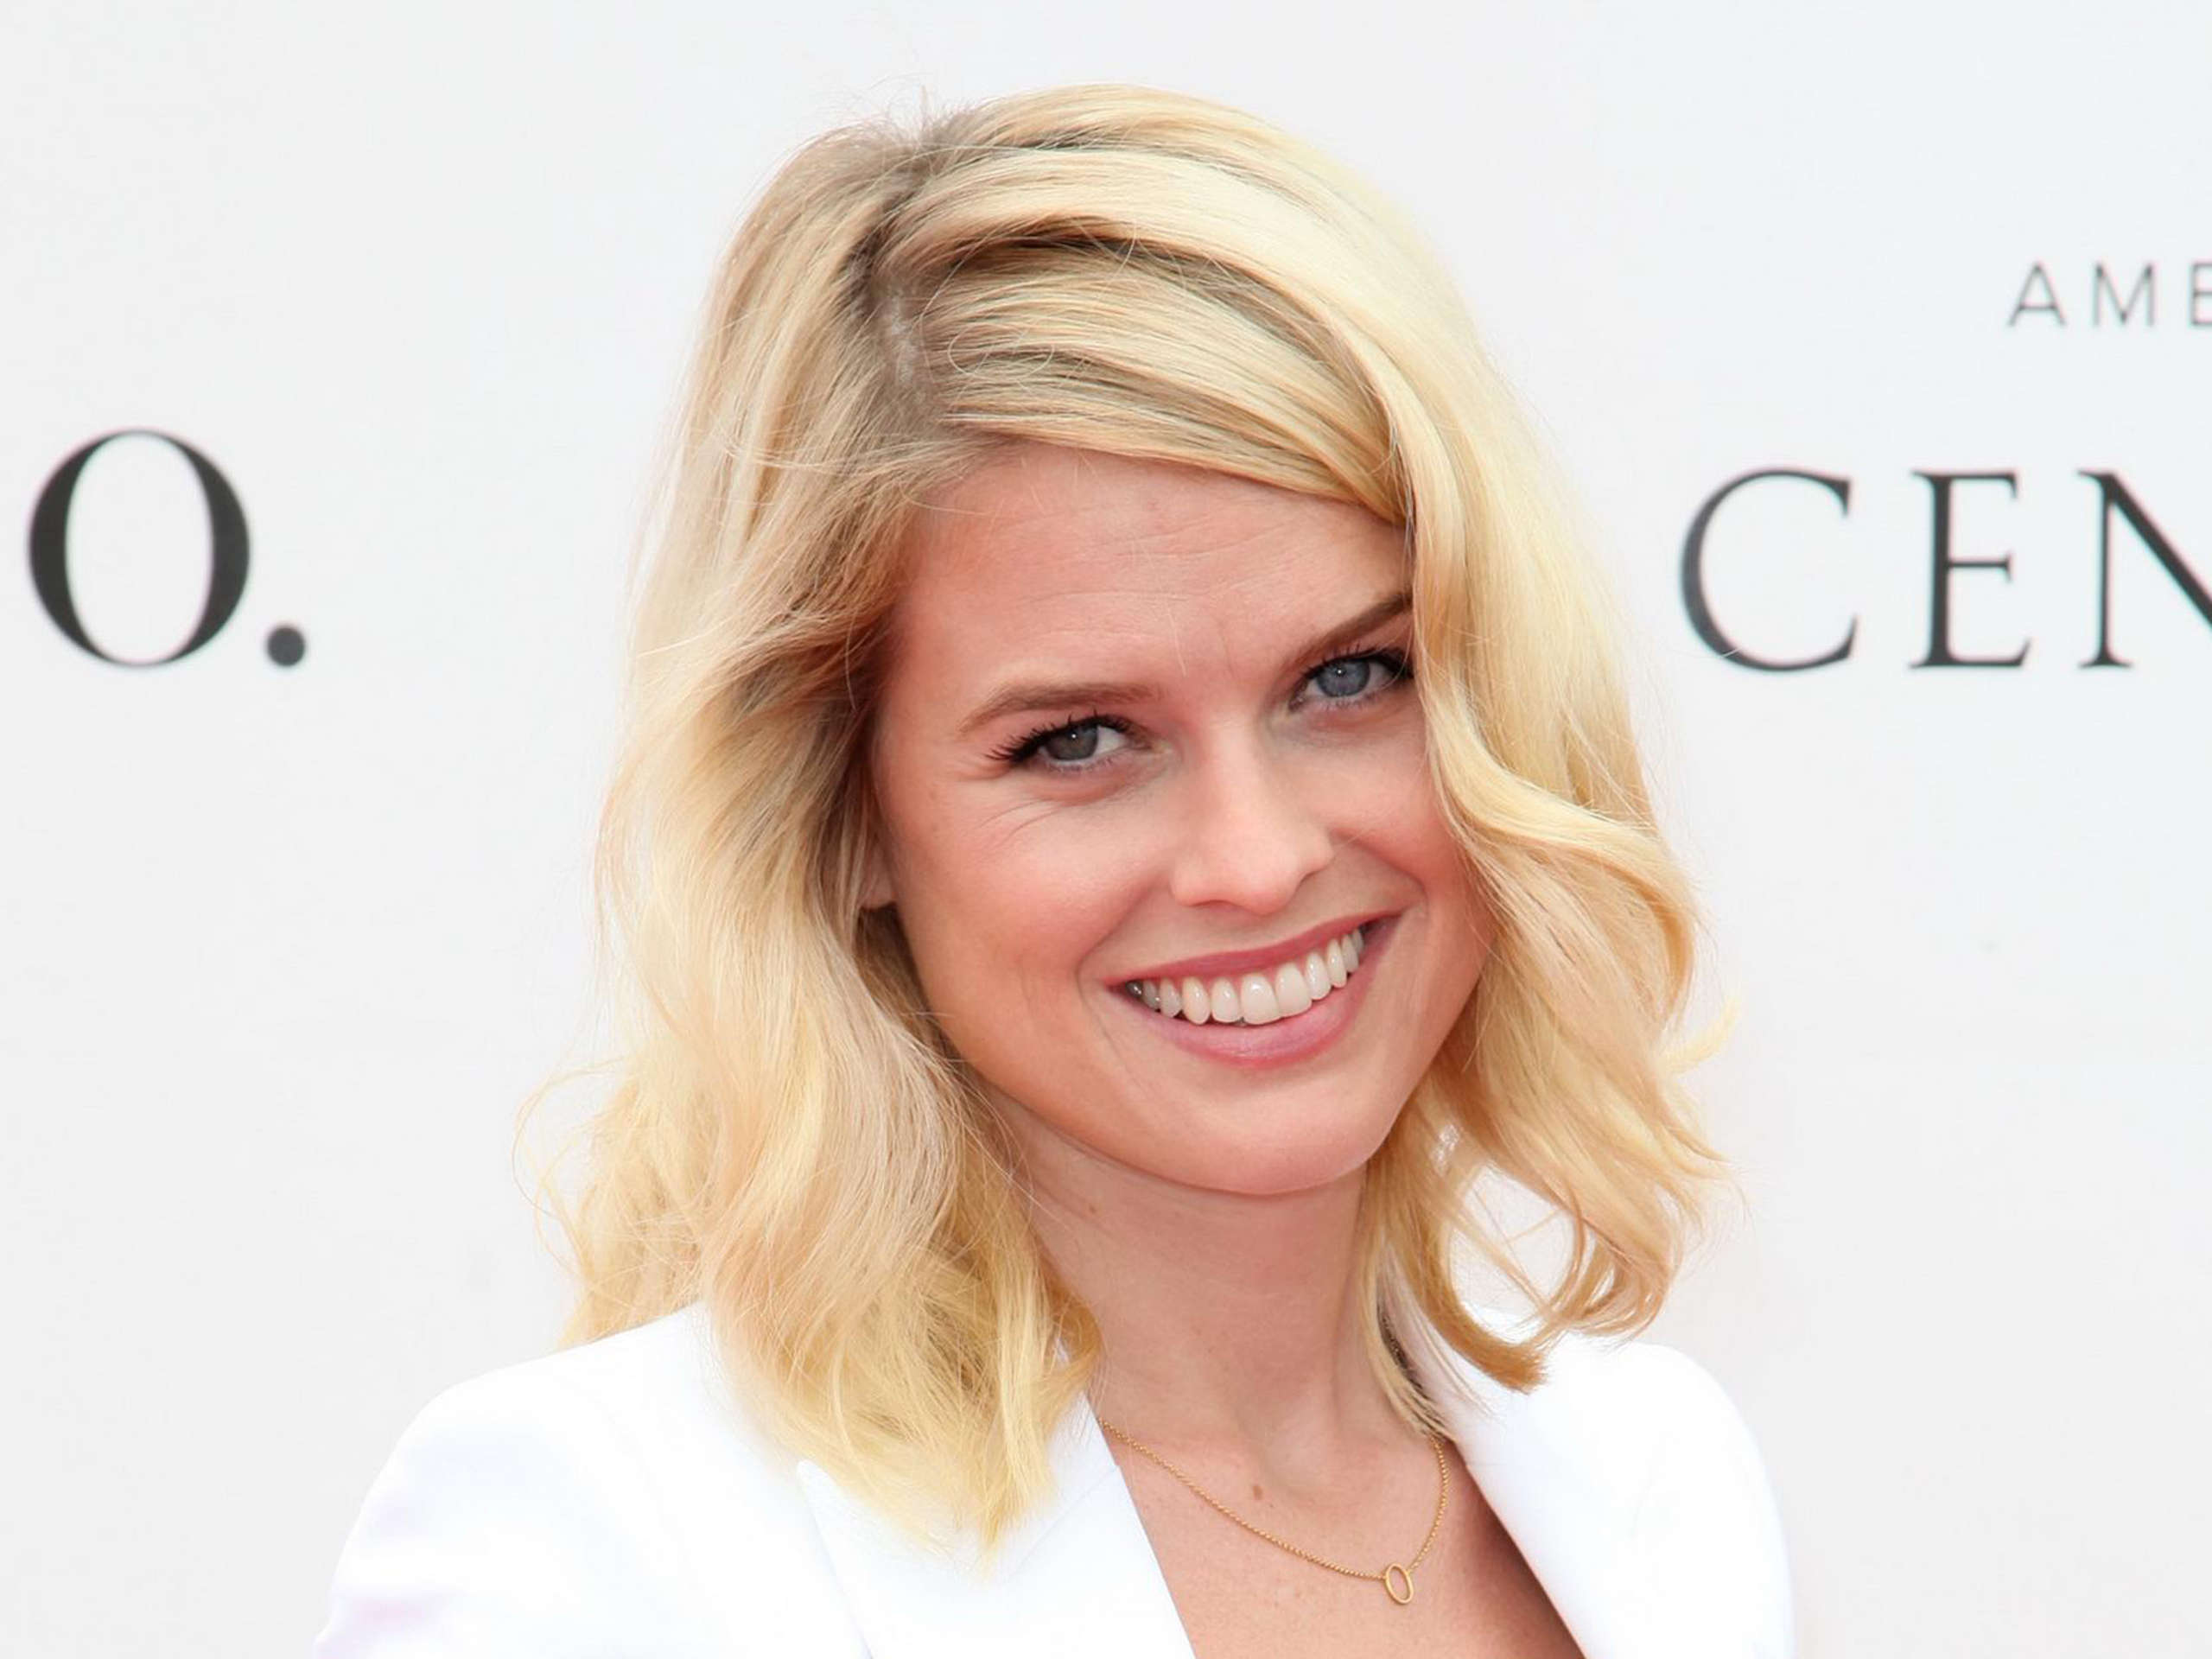 Alice Eve Computer Wallpaper 56362 2560x1920 px ...